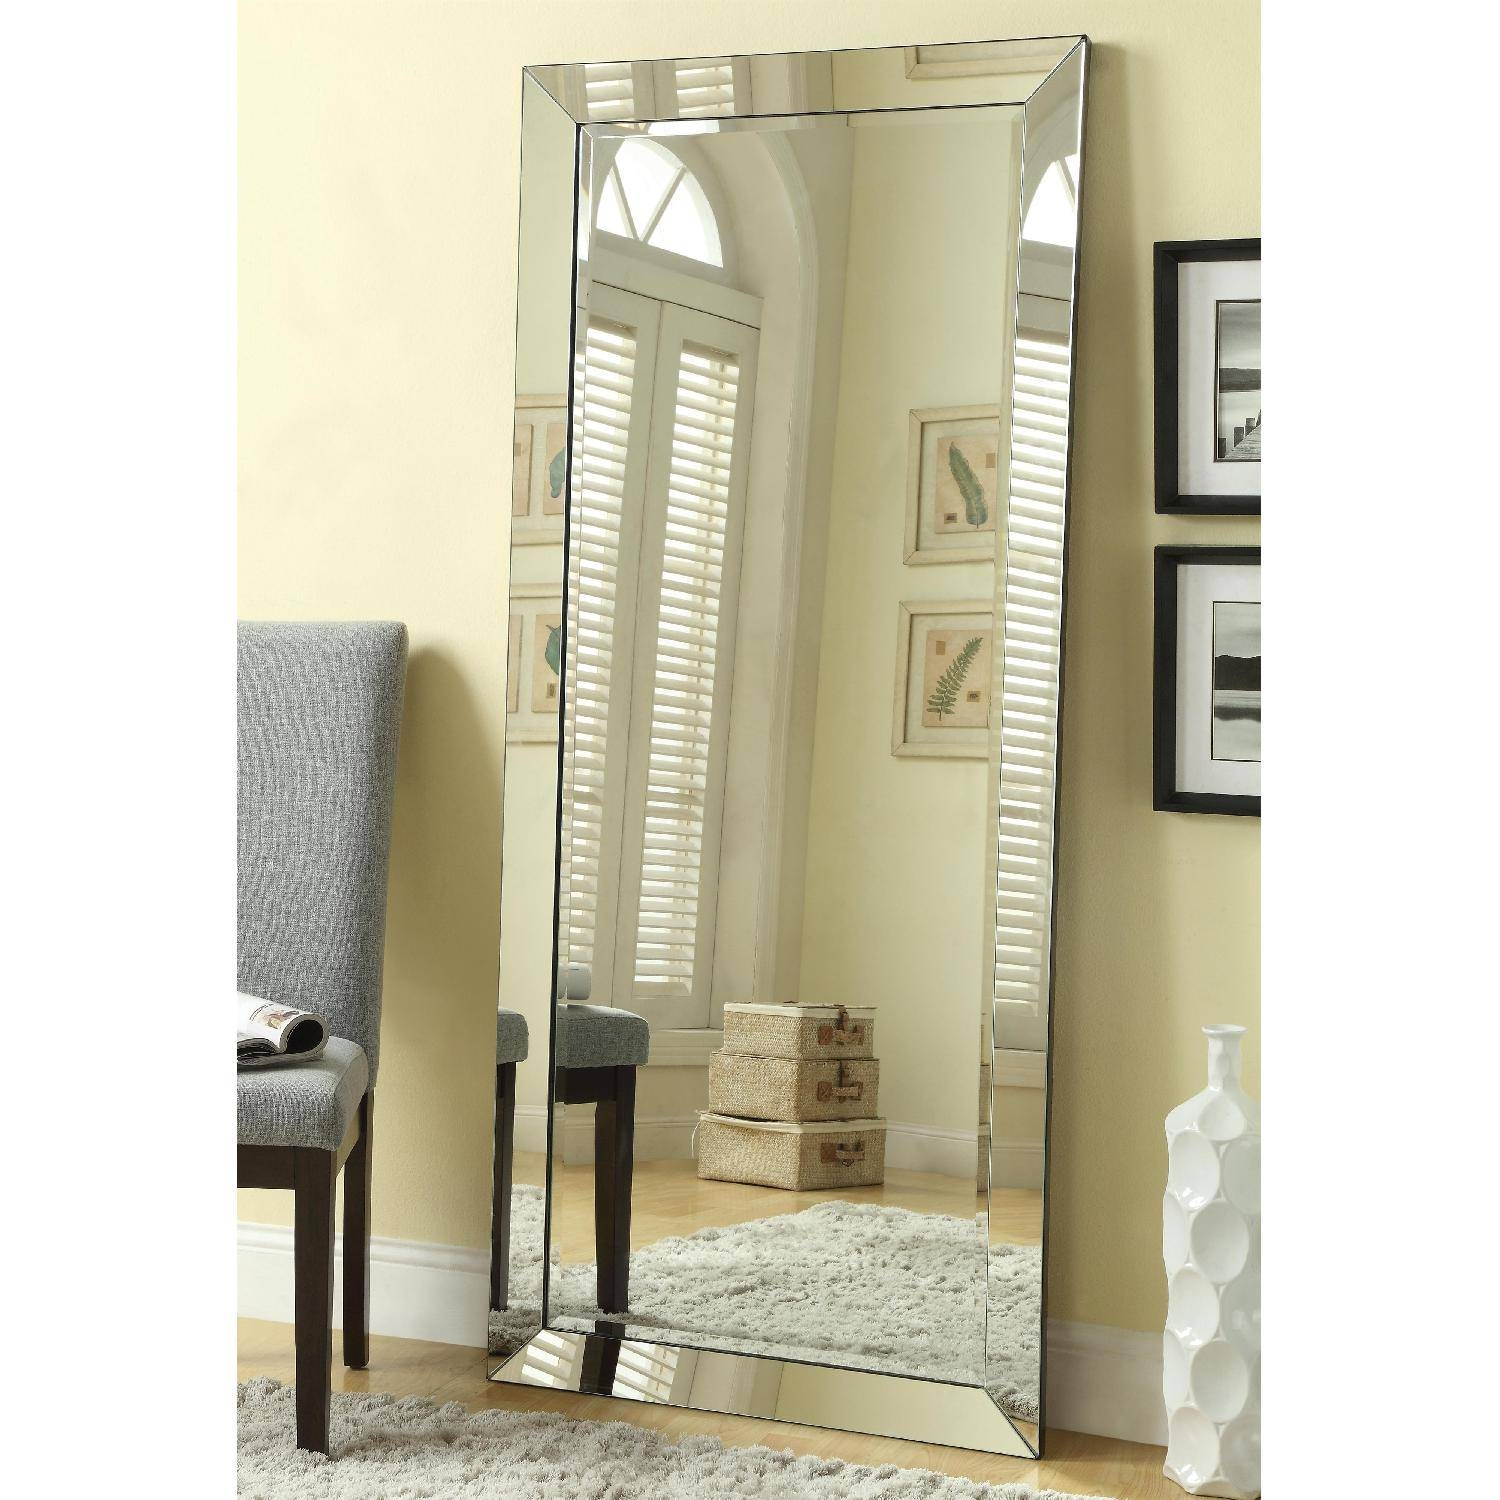 Bedroom Furniture Sets : Hanging Mirror Free Standing Mirror Round throughout Extra Large Free Standing Mirrors (Image 3 of 25)